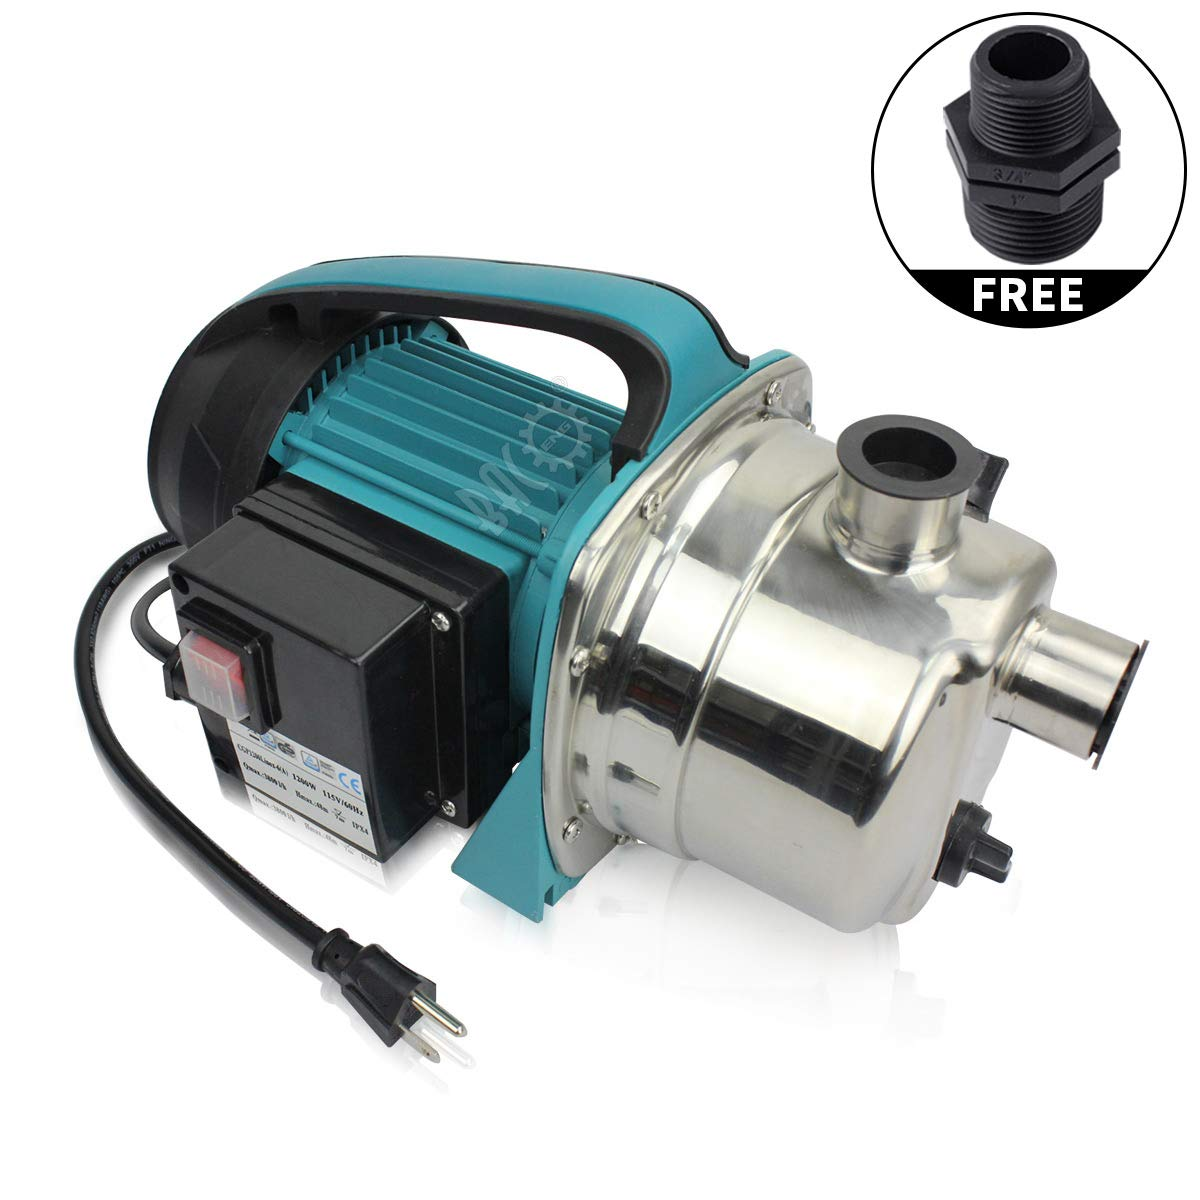 BACOENG 1.6HP Stainless Booster Pump Shallow Well Pump for Home Garden Irrigation by BACOENG